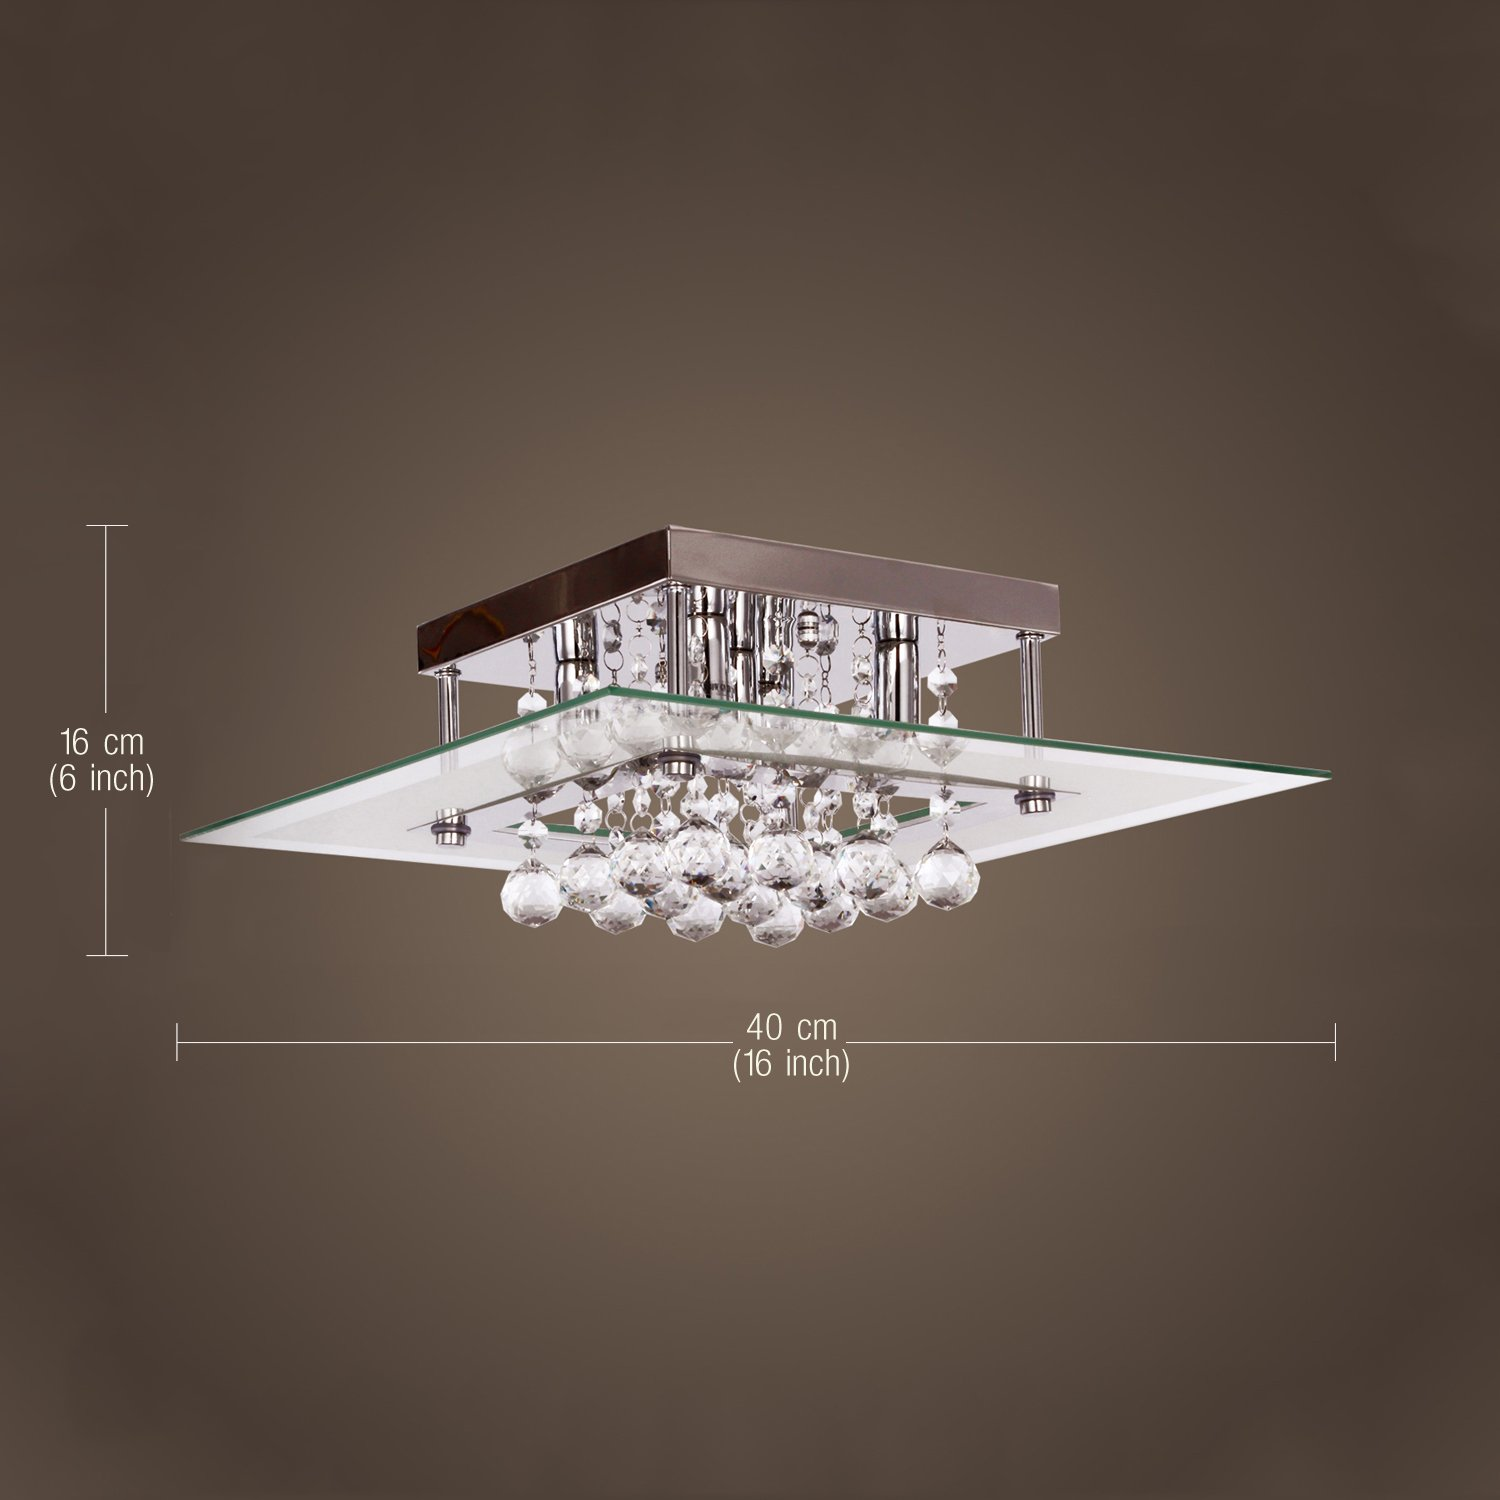 crystal drop flush mount lights with 5 lights in square design modern home ceiling light fixture flush mount pendant light